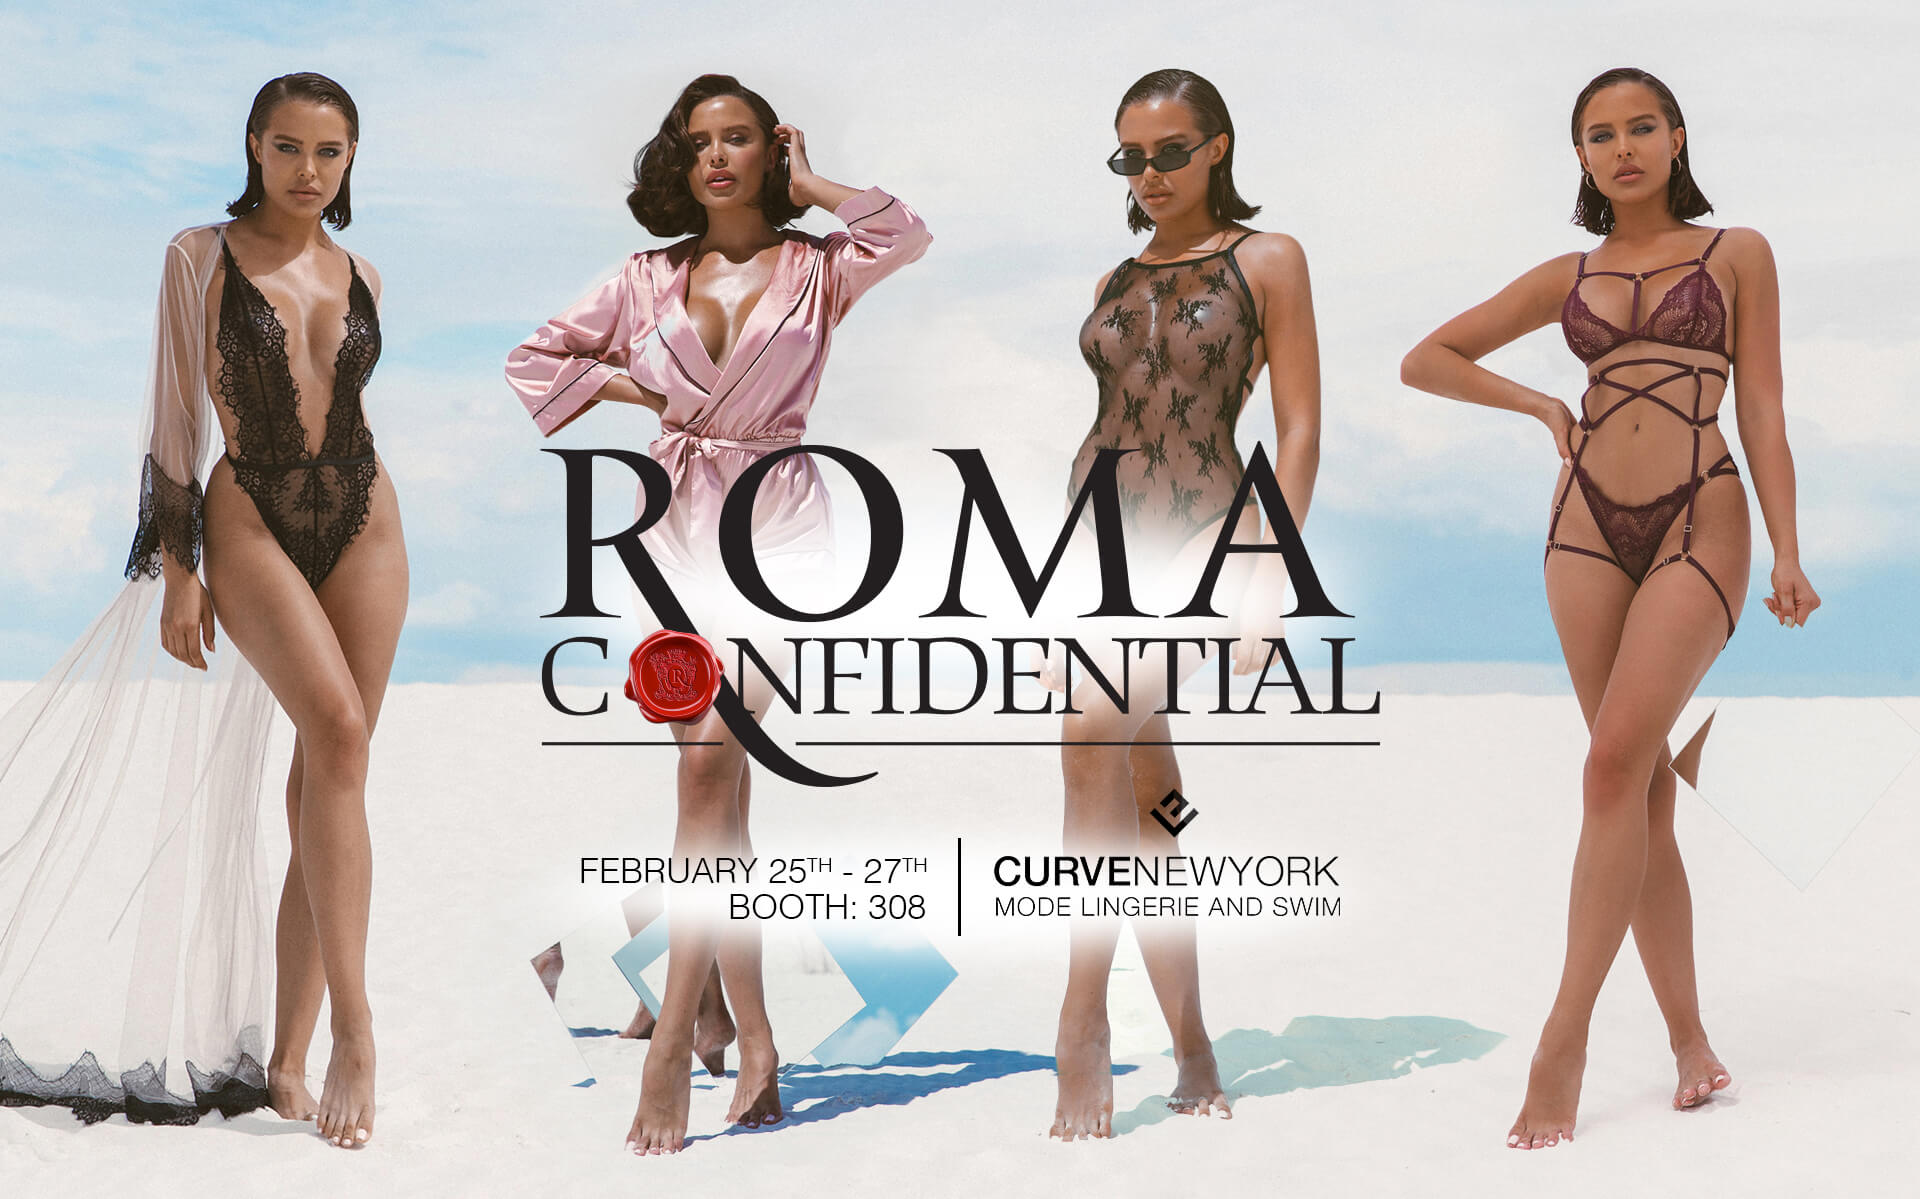 Roma Confidential at CurveNY!